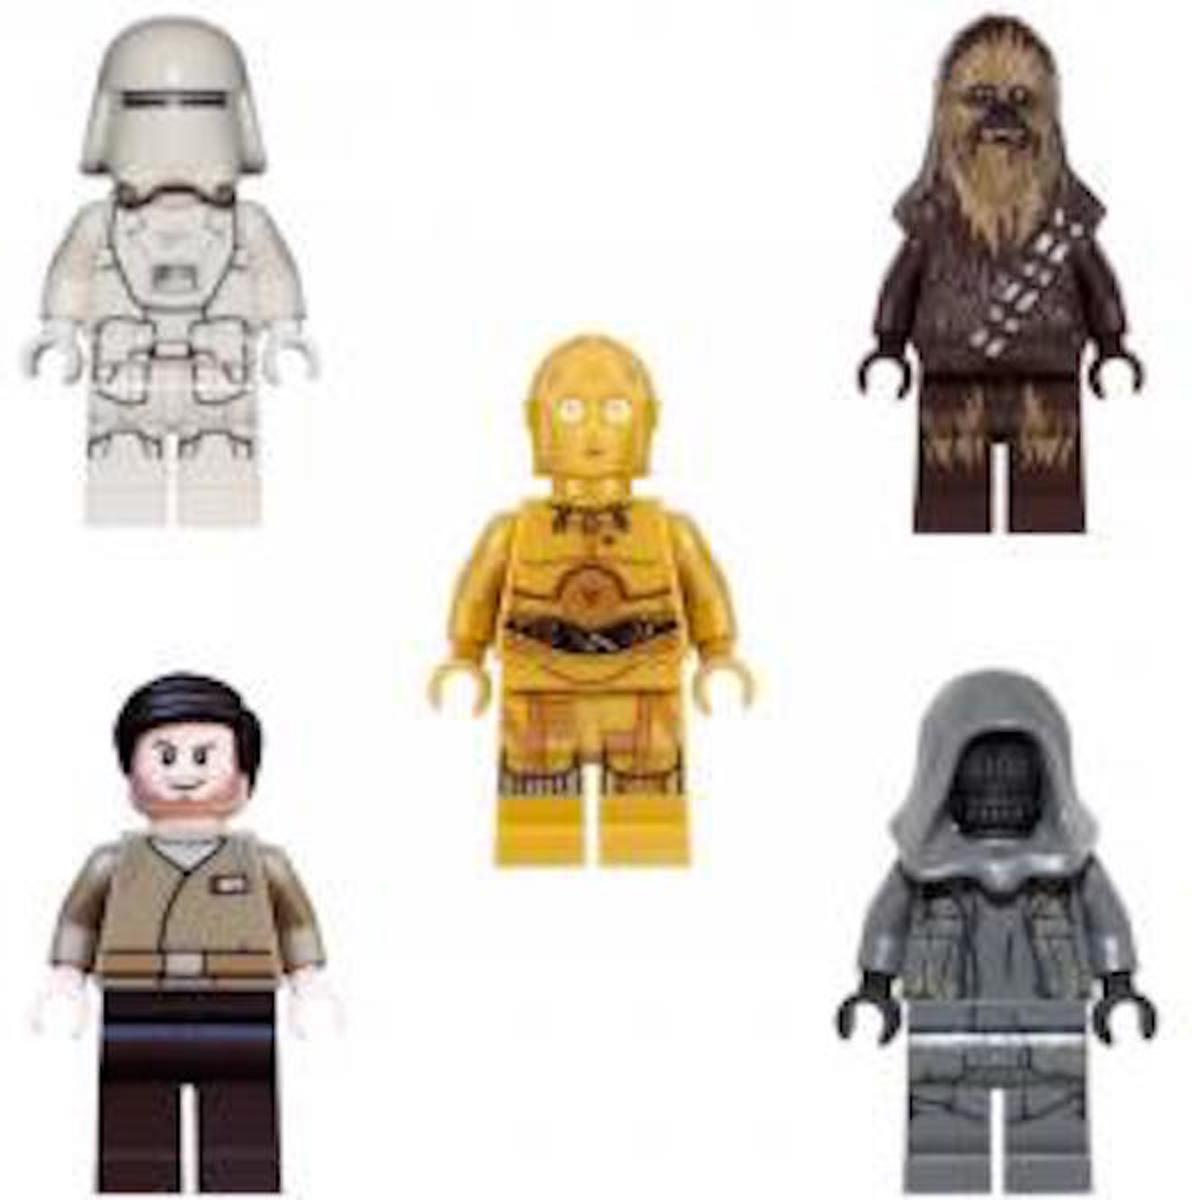 LEGO Star Wars Bundel 002: Chewbacca, C-3PO, First order snowtrooper, Resistance officer, Unkars thug